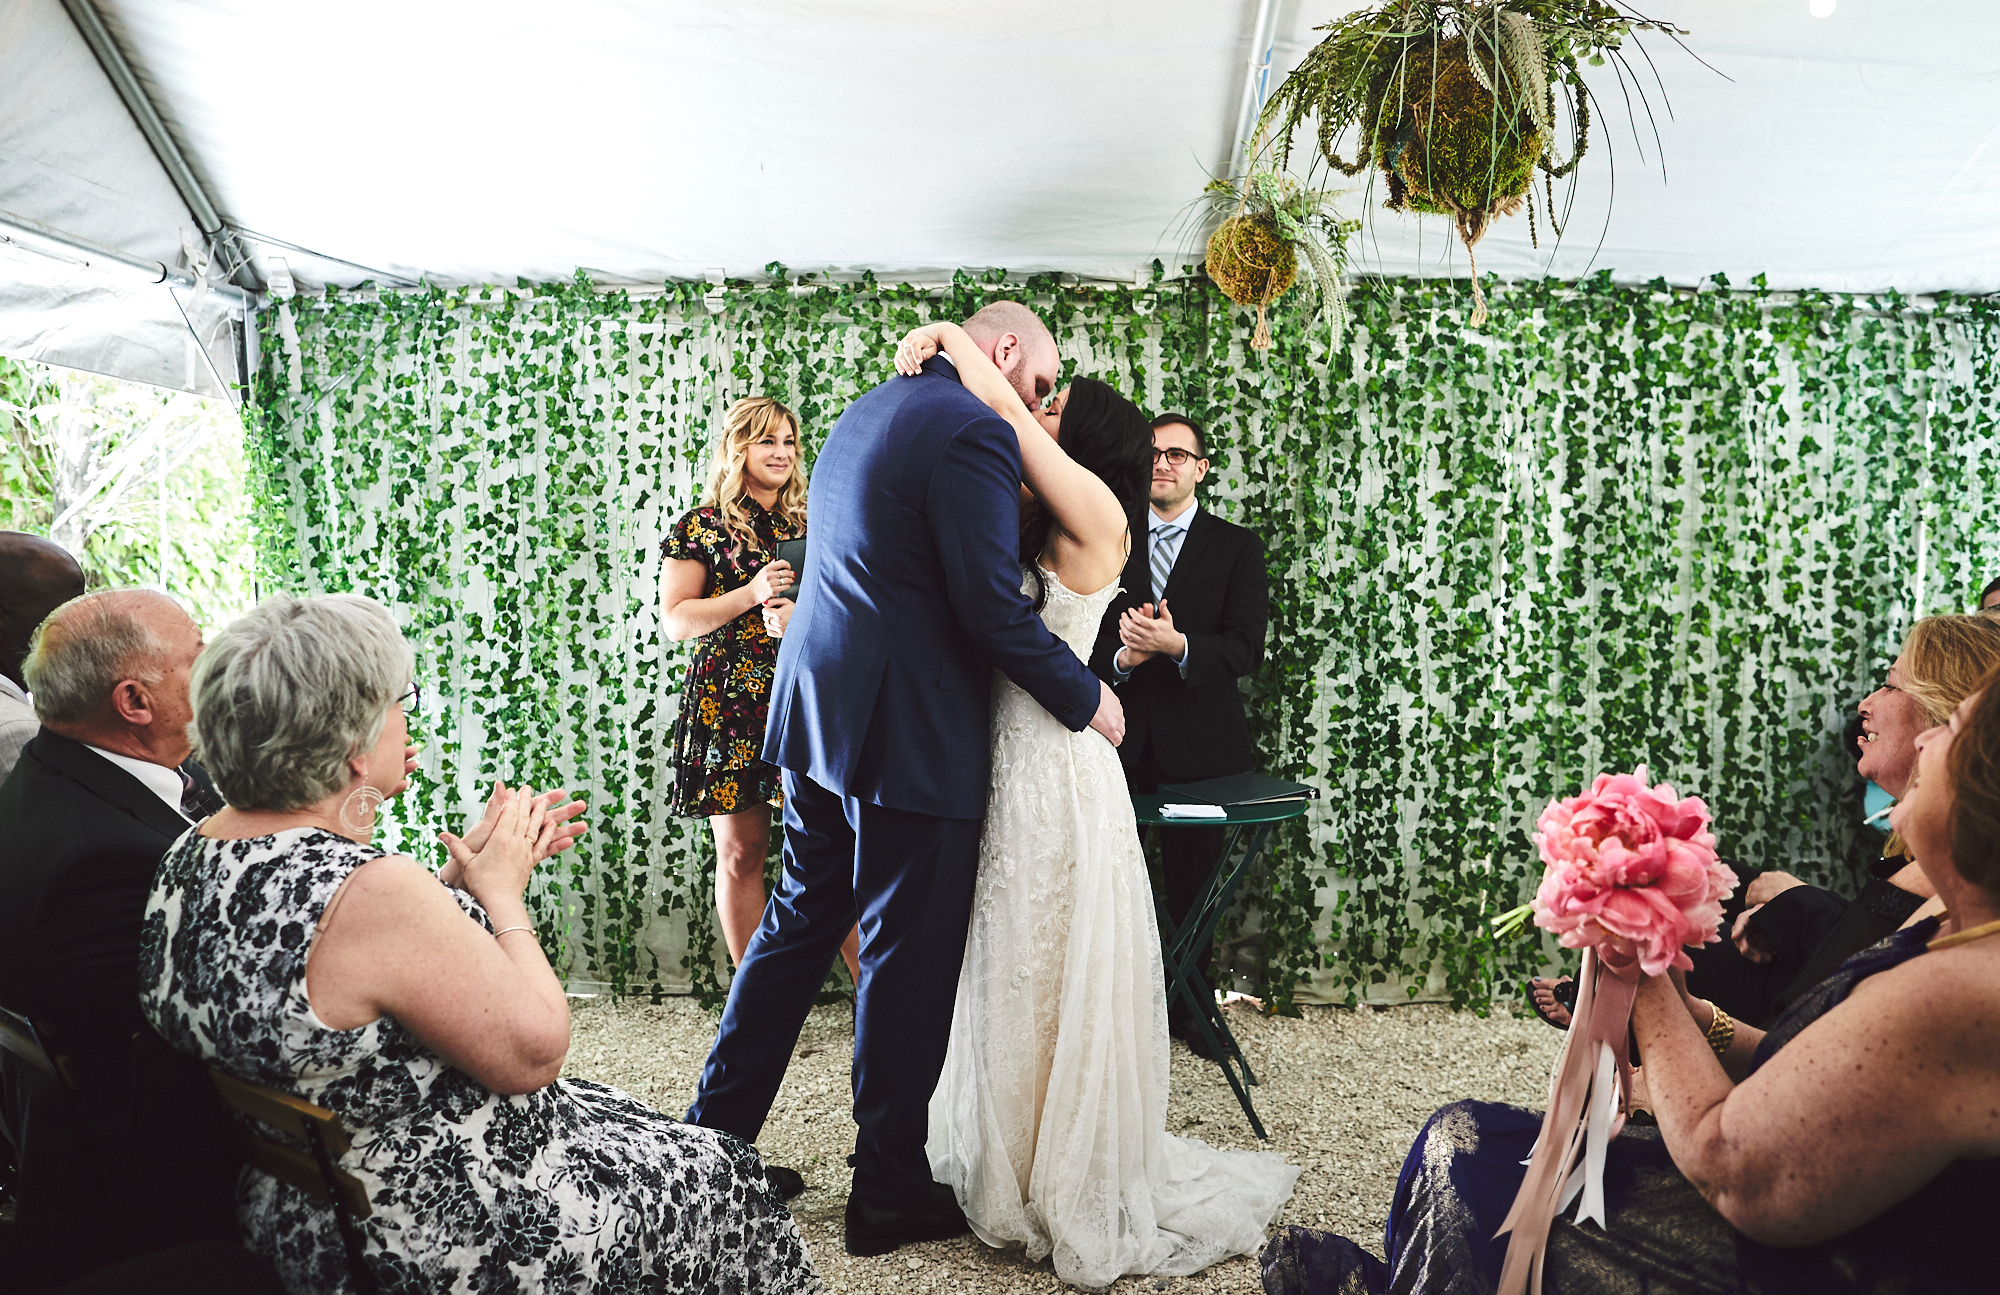 190518_SpringThreesBreweryWedding_By_BriJohnsonWeddings_0099.jpg